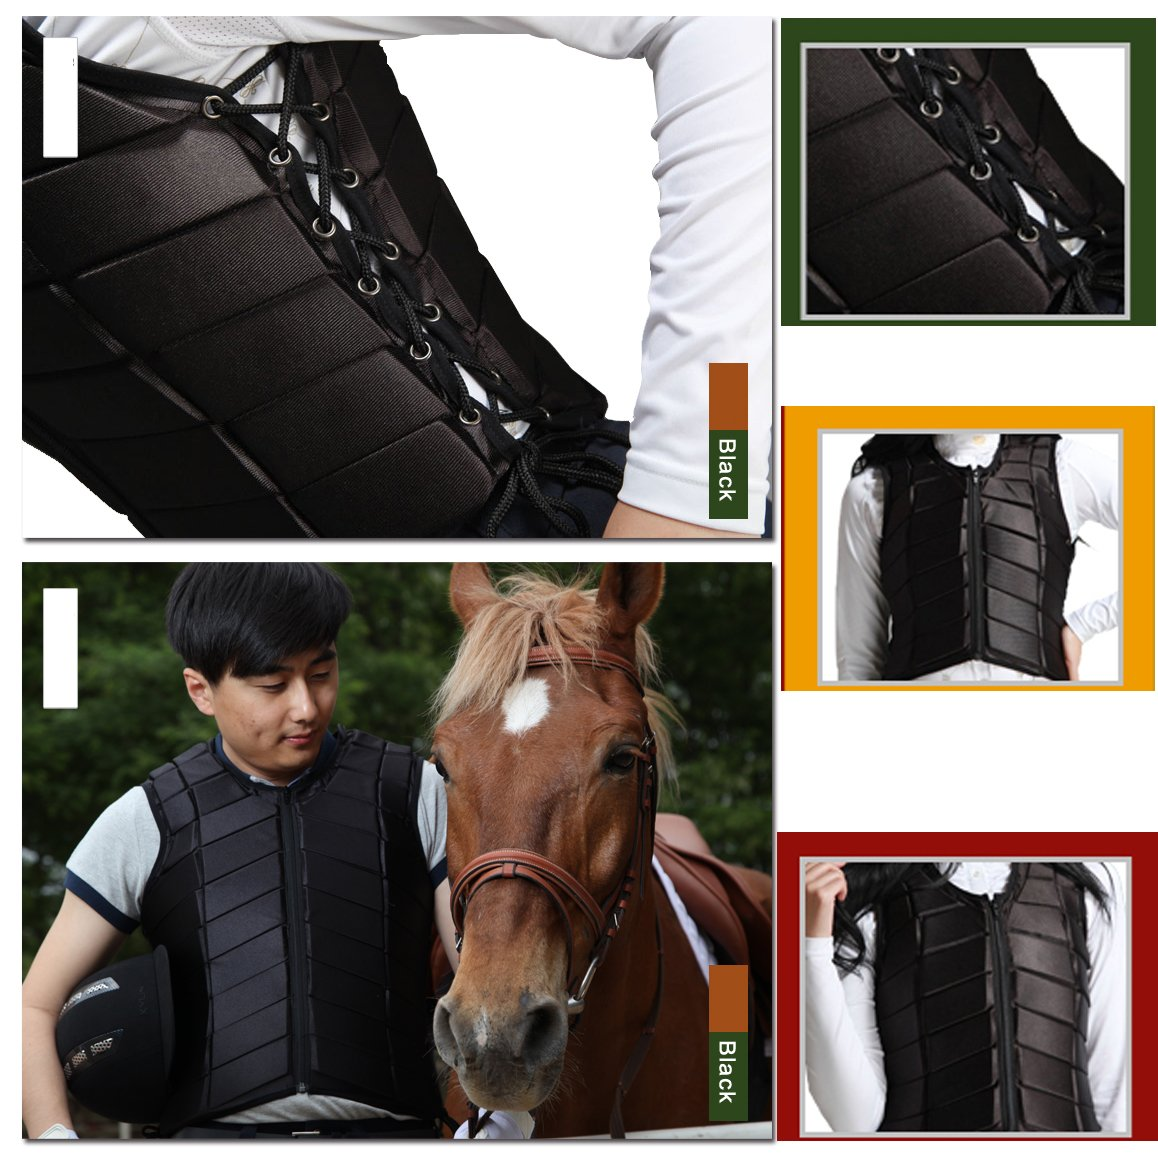 GFDHHNN Horse Riding Equestrian Body Protector Safety Eventer Vest Protection Protective (Black, L) by GFDHHNN (Image #6)